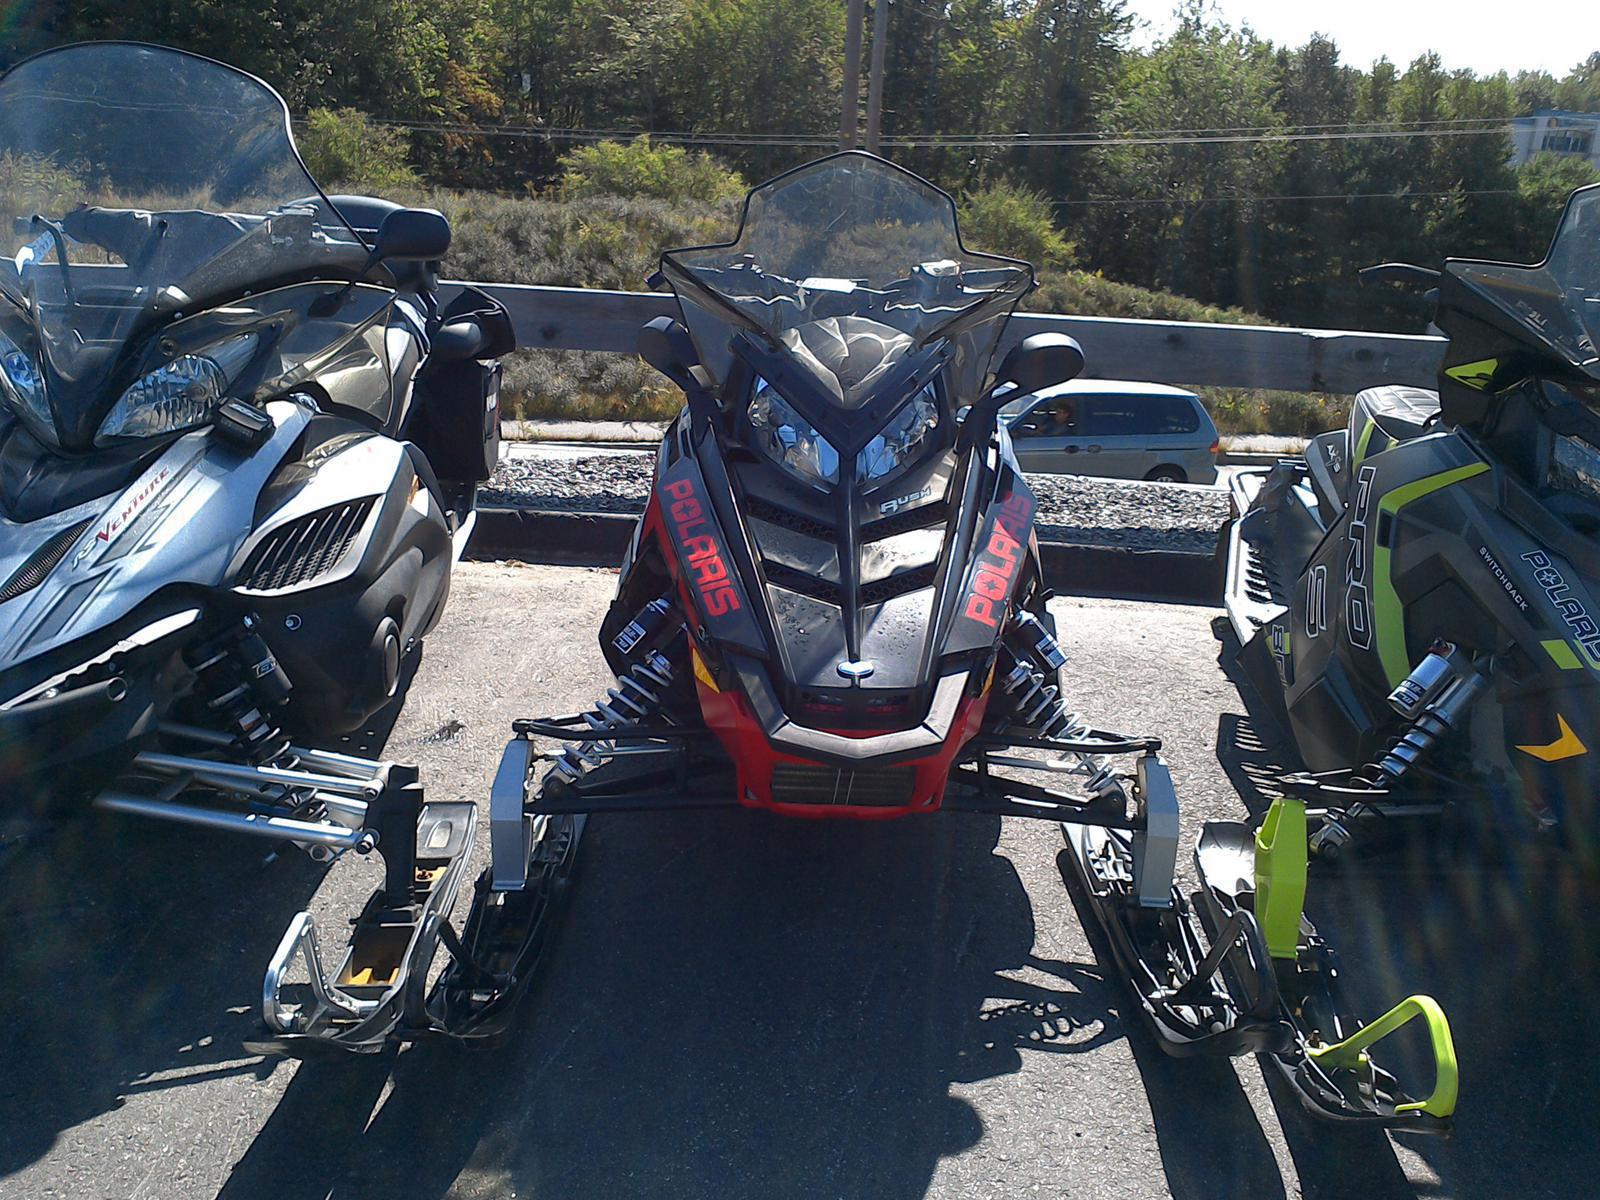 2012 polaris industries 800 rush pro-r - electric start